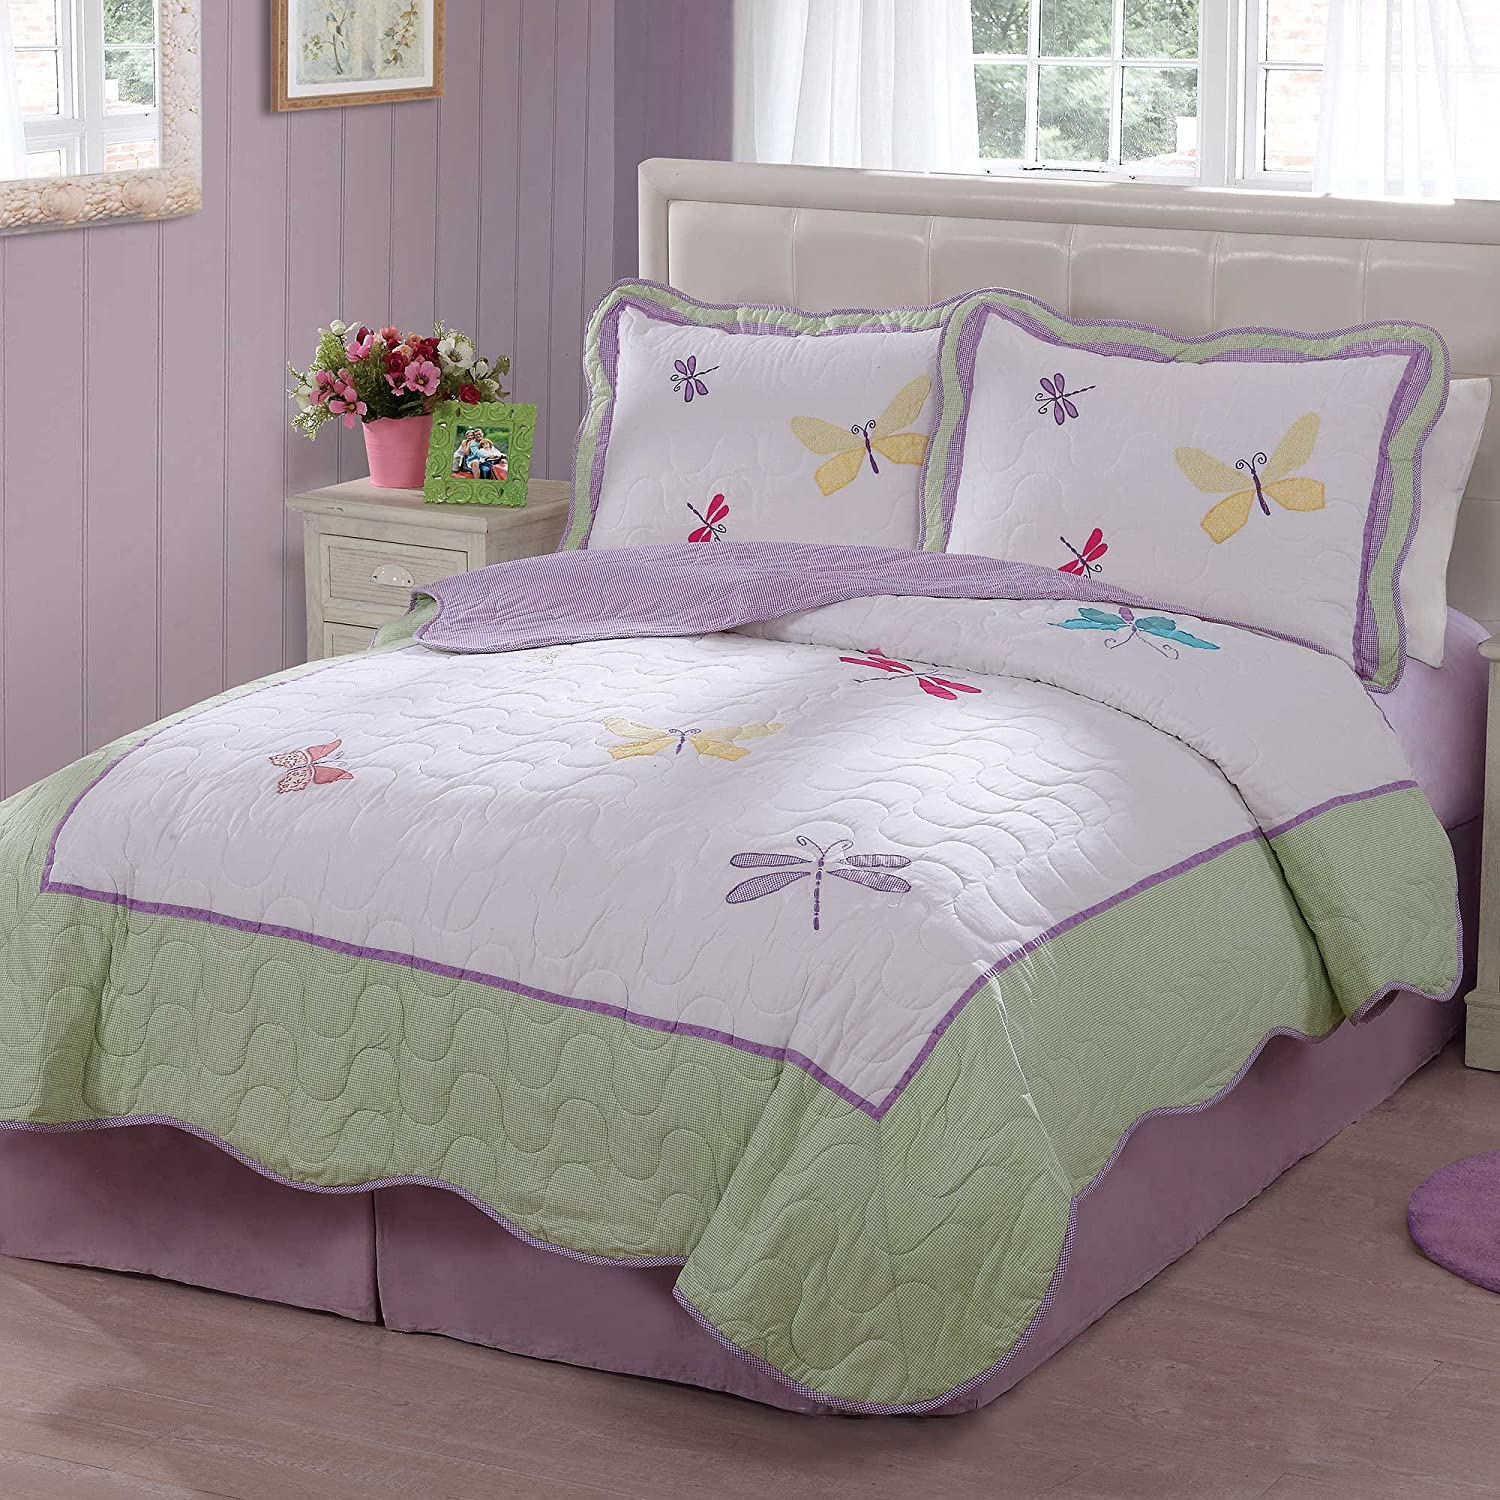 Bed sheet set with quilt - Bed Sheet Set With Quilt 45